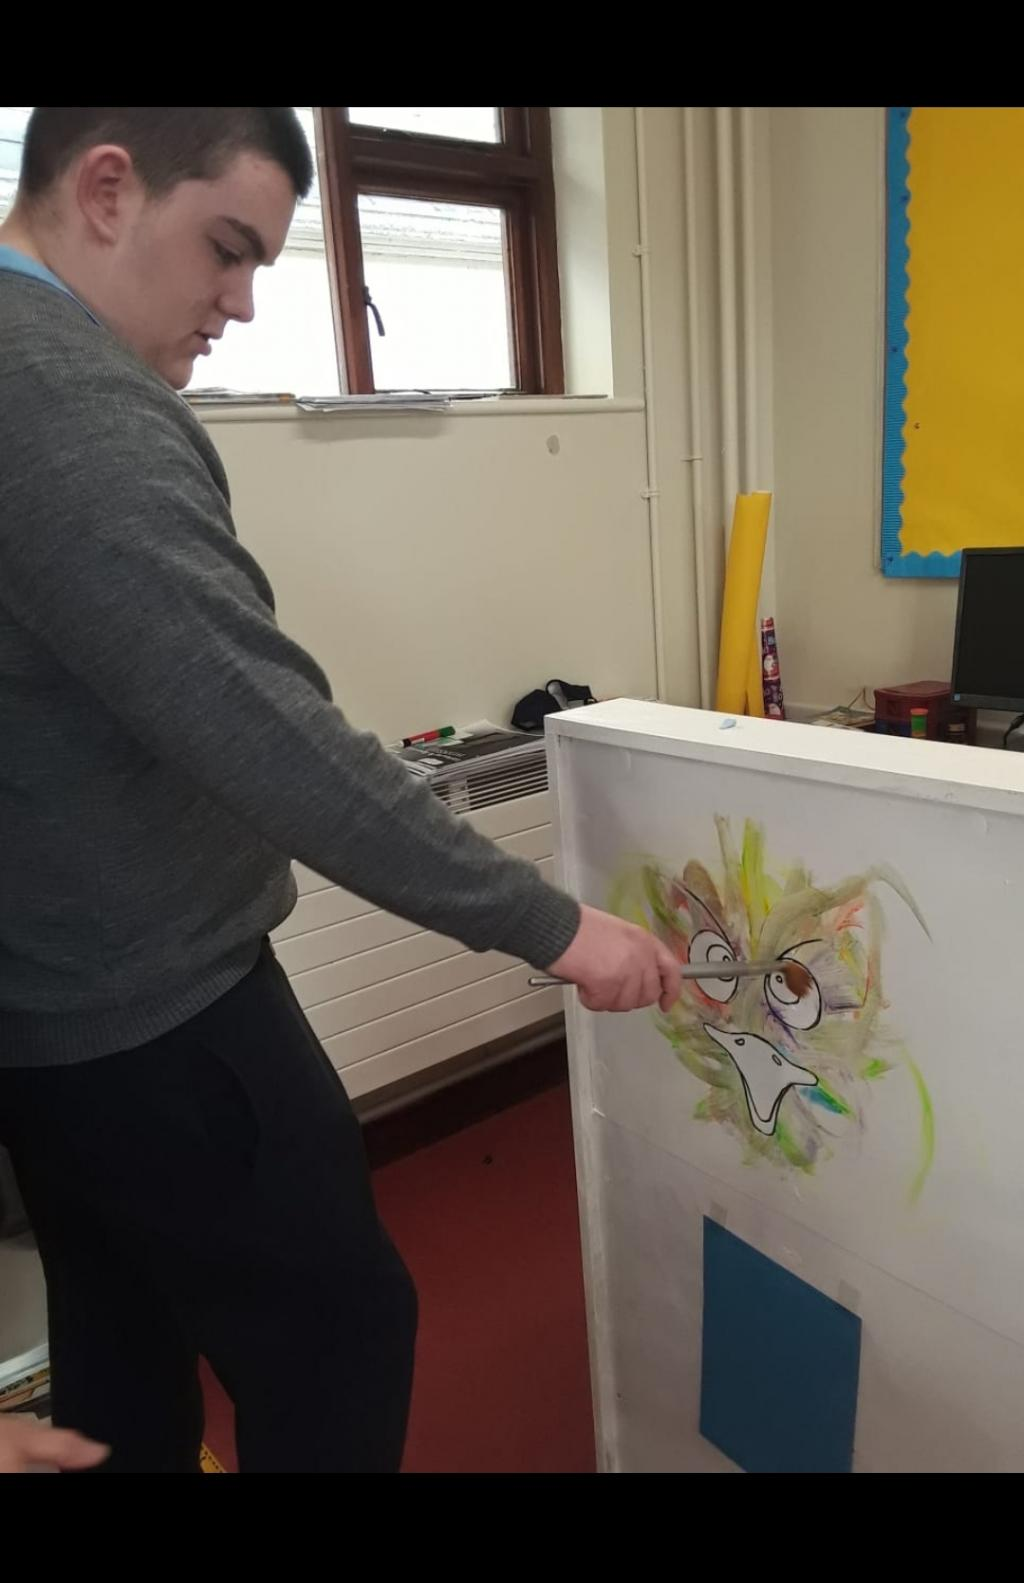 Art Students working on mural for art exhibition in January.